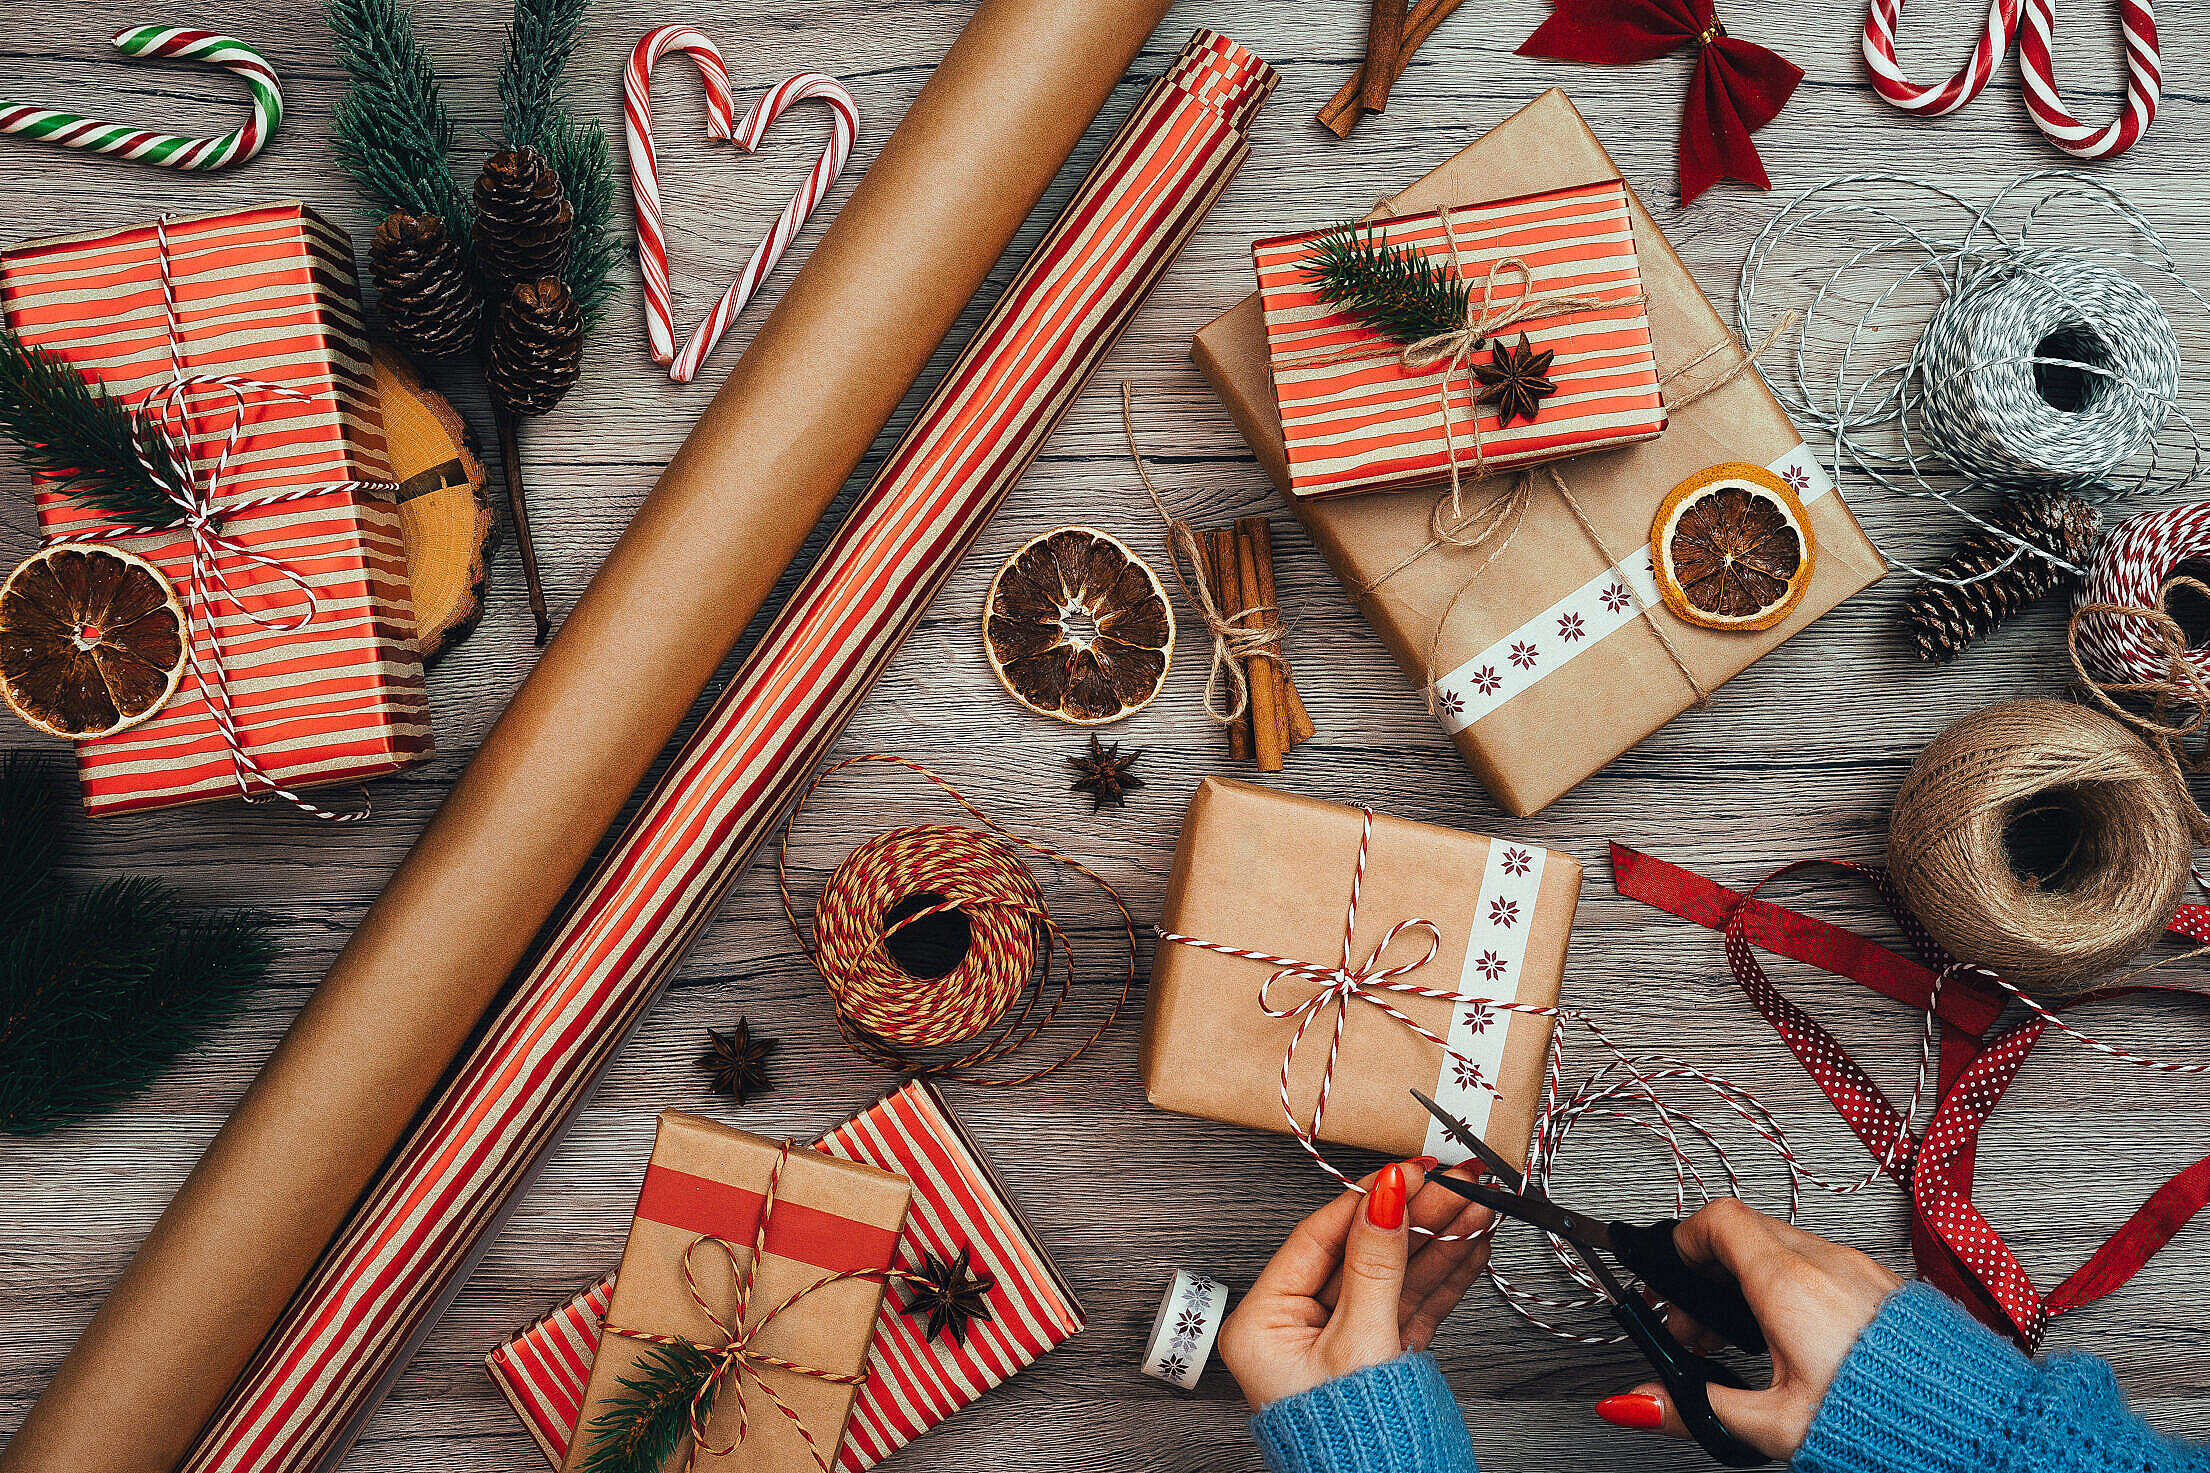 Wrapping Christmas Presents Free Stock Photo